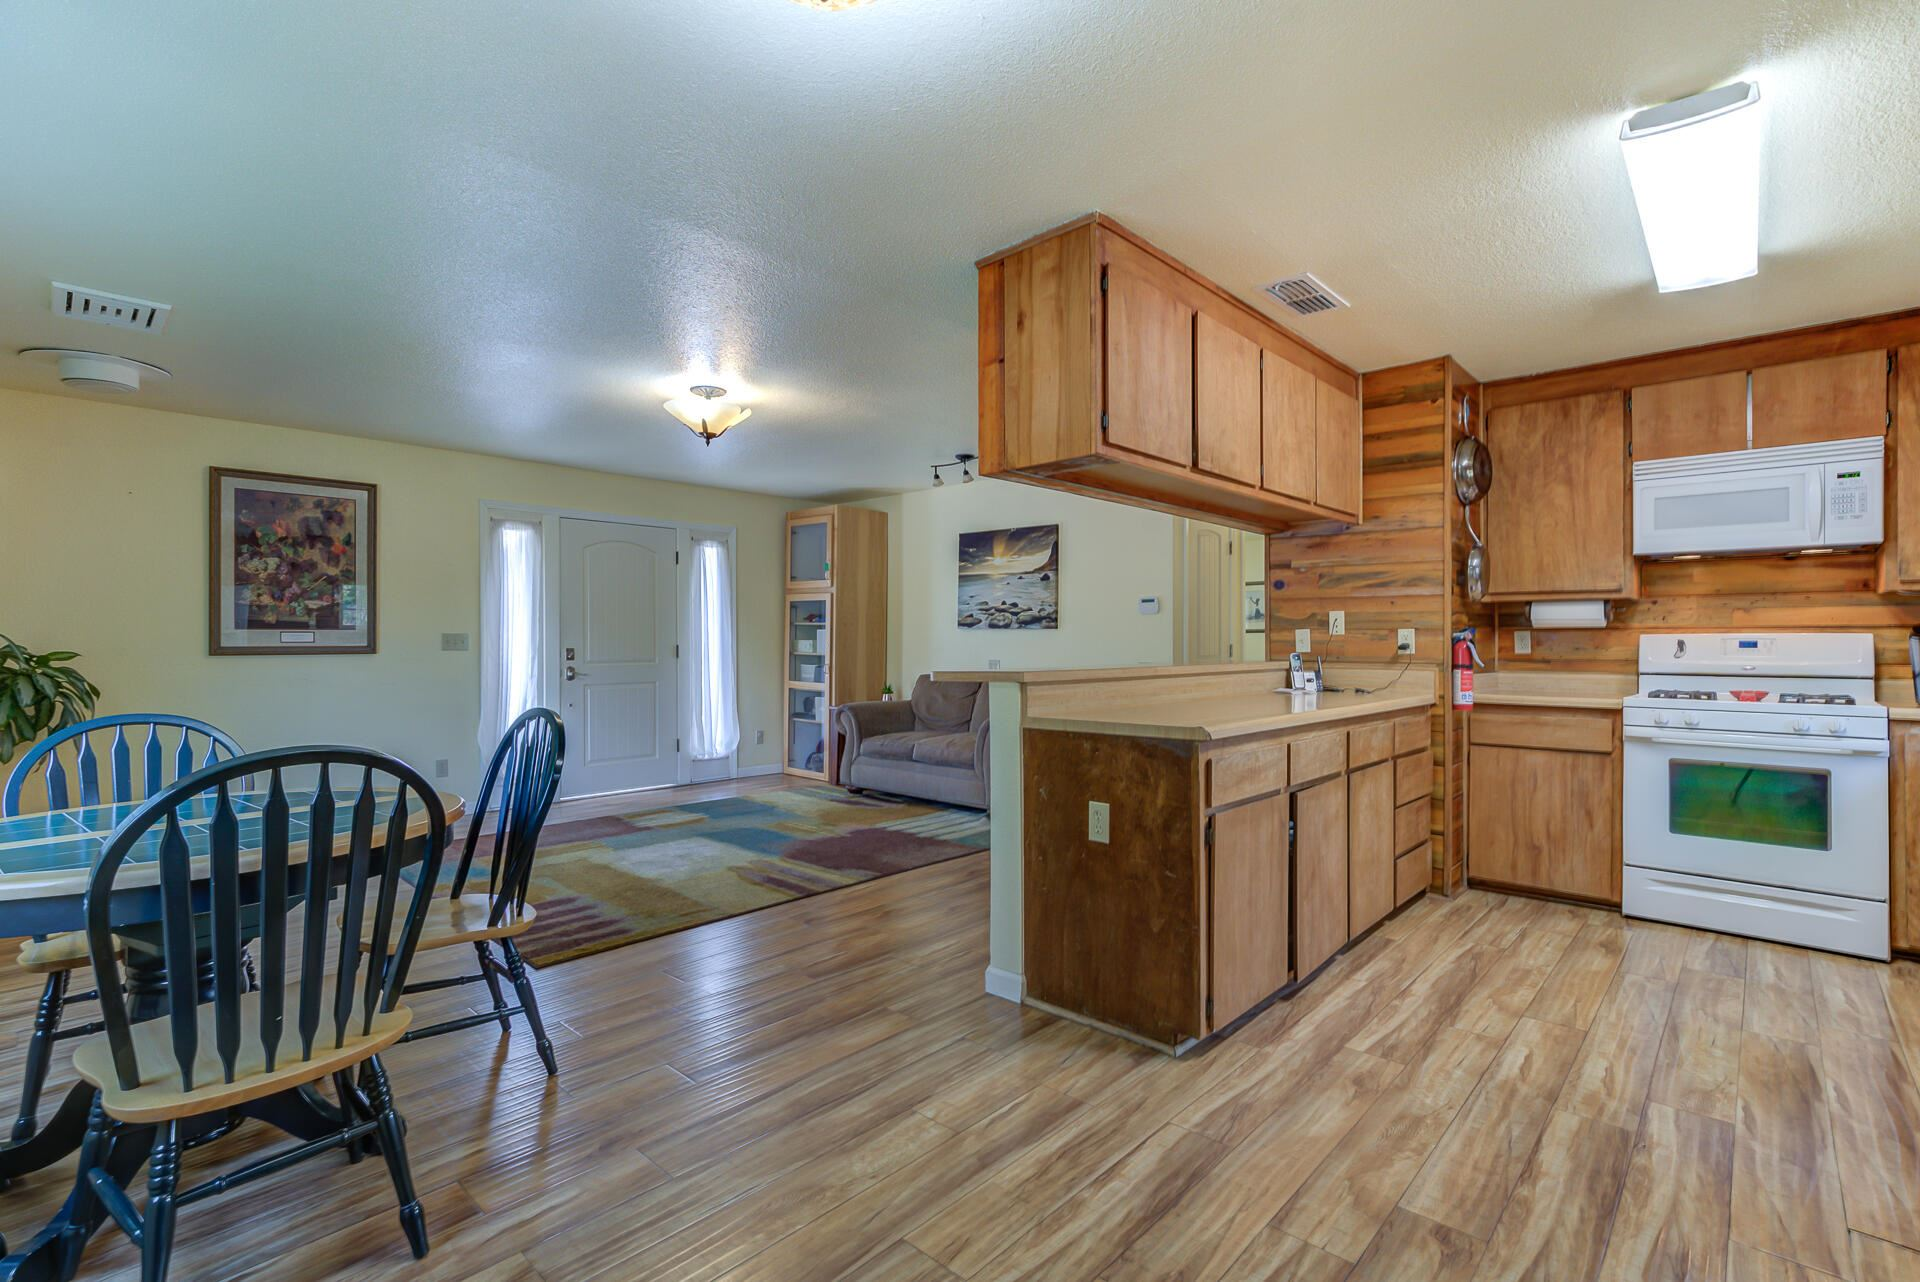 Photo of 1683 Manter Dr, Anderson, CA 96007 (MLS # 21-4501)